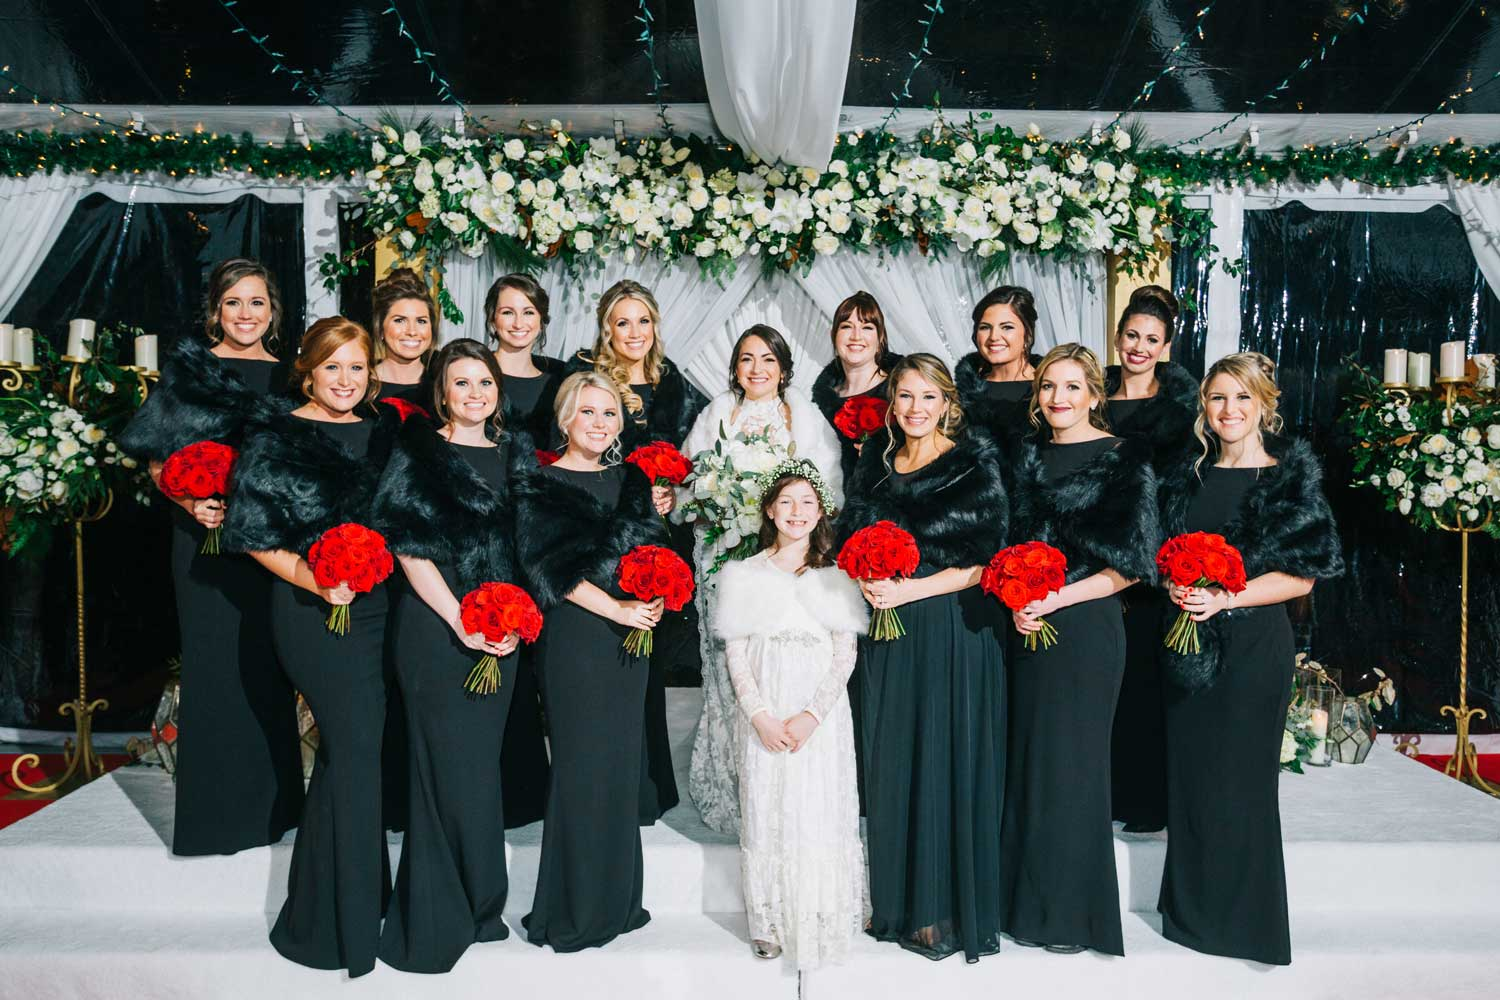 holiday wedding ideas black bridesmaid dresses fur wrap red bouquets